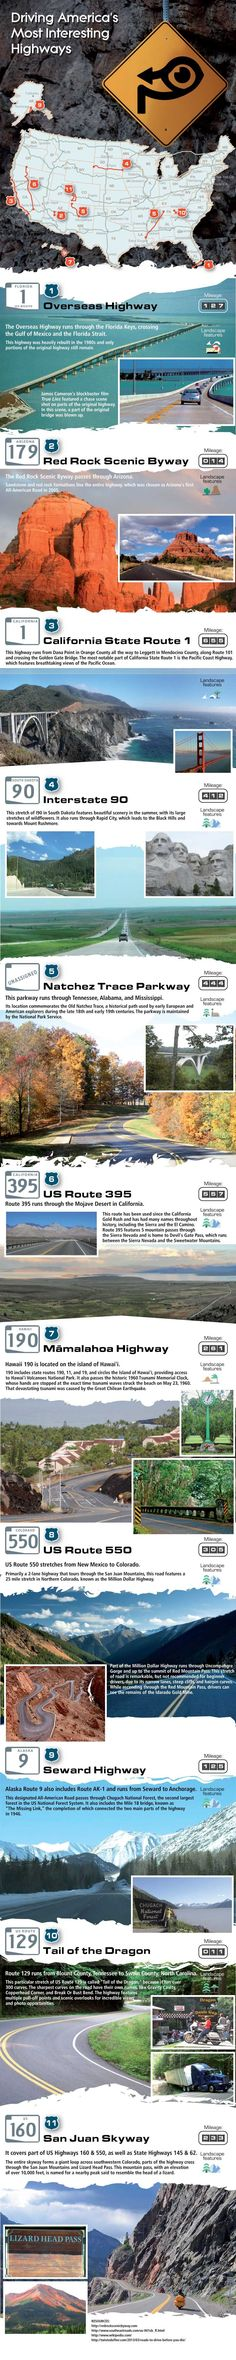 Awesome infographic guide to some of the most interesting highways to drive across America. Excellent for helping plan out a road trip! Rv Travel, Travel Info, Travel List, Adventure Travel, Family Travel, Travel Destinations, Travel Bugs, Places To Travel, Travel Ideas